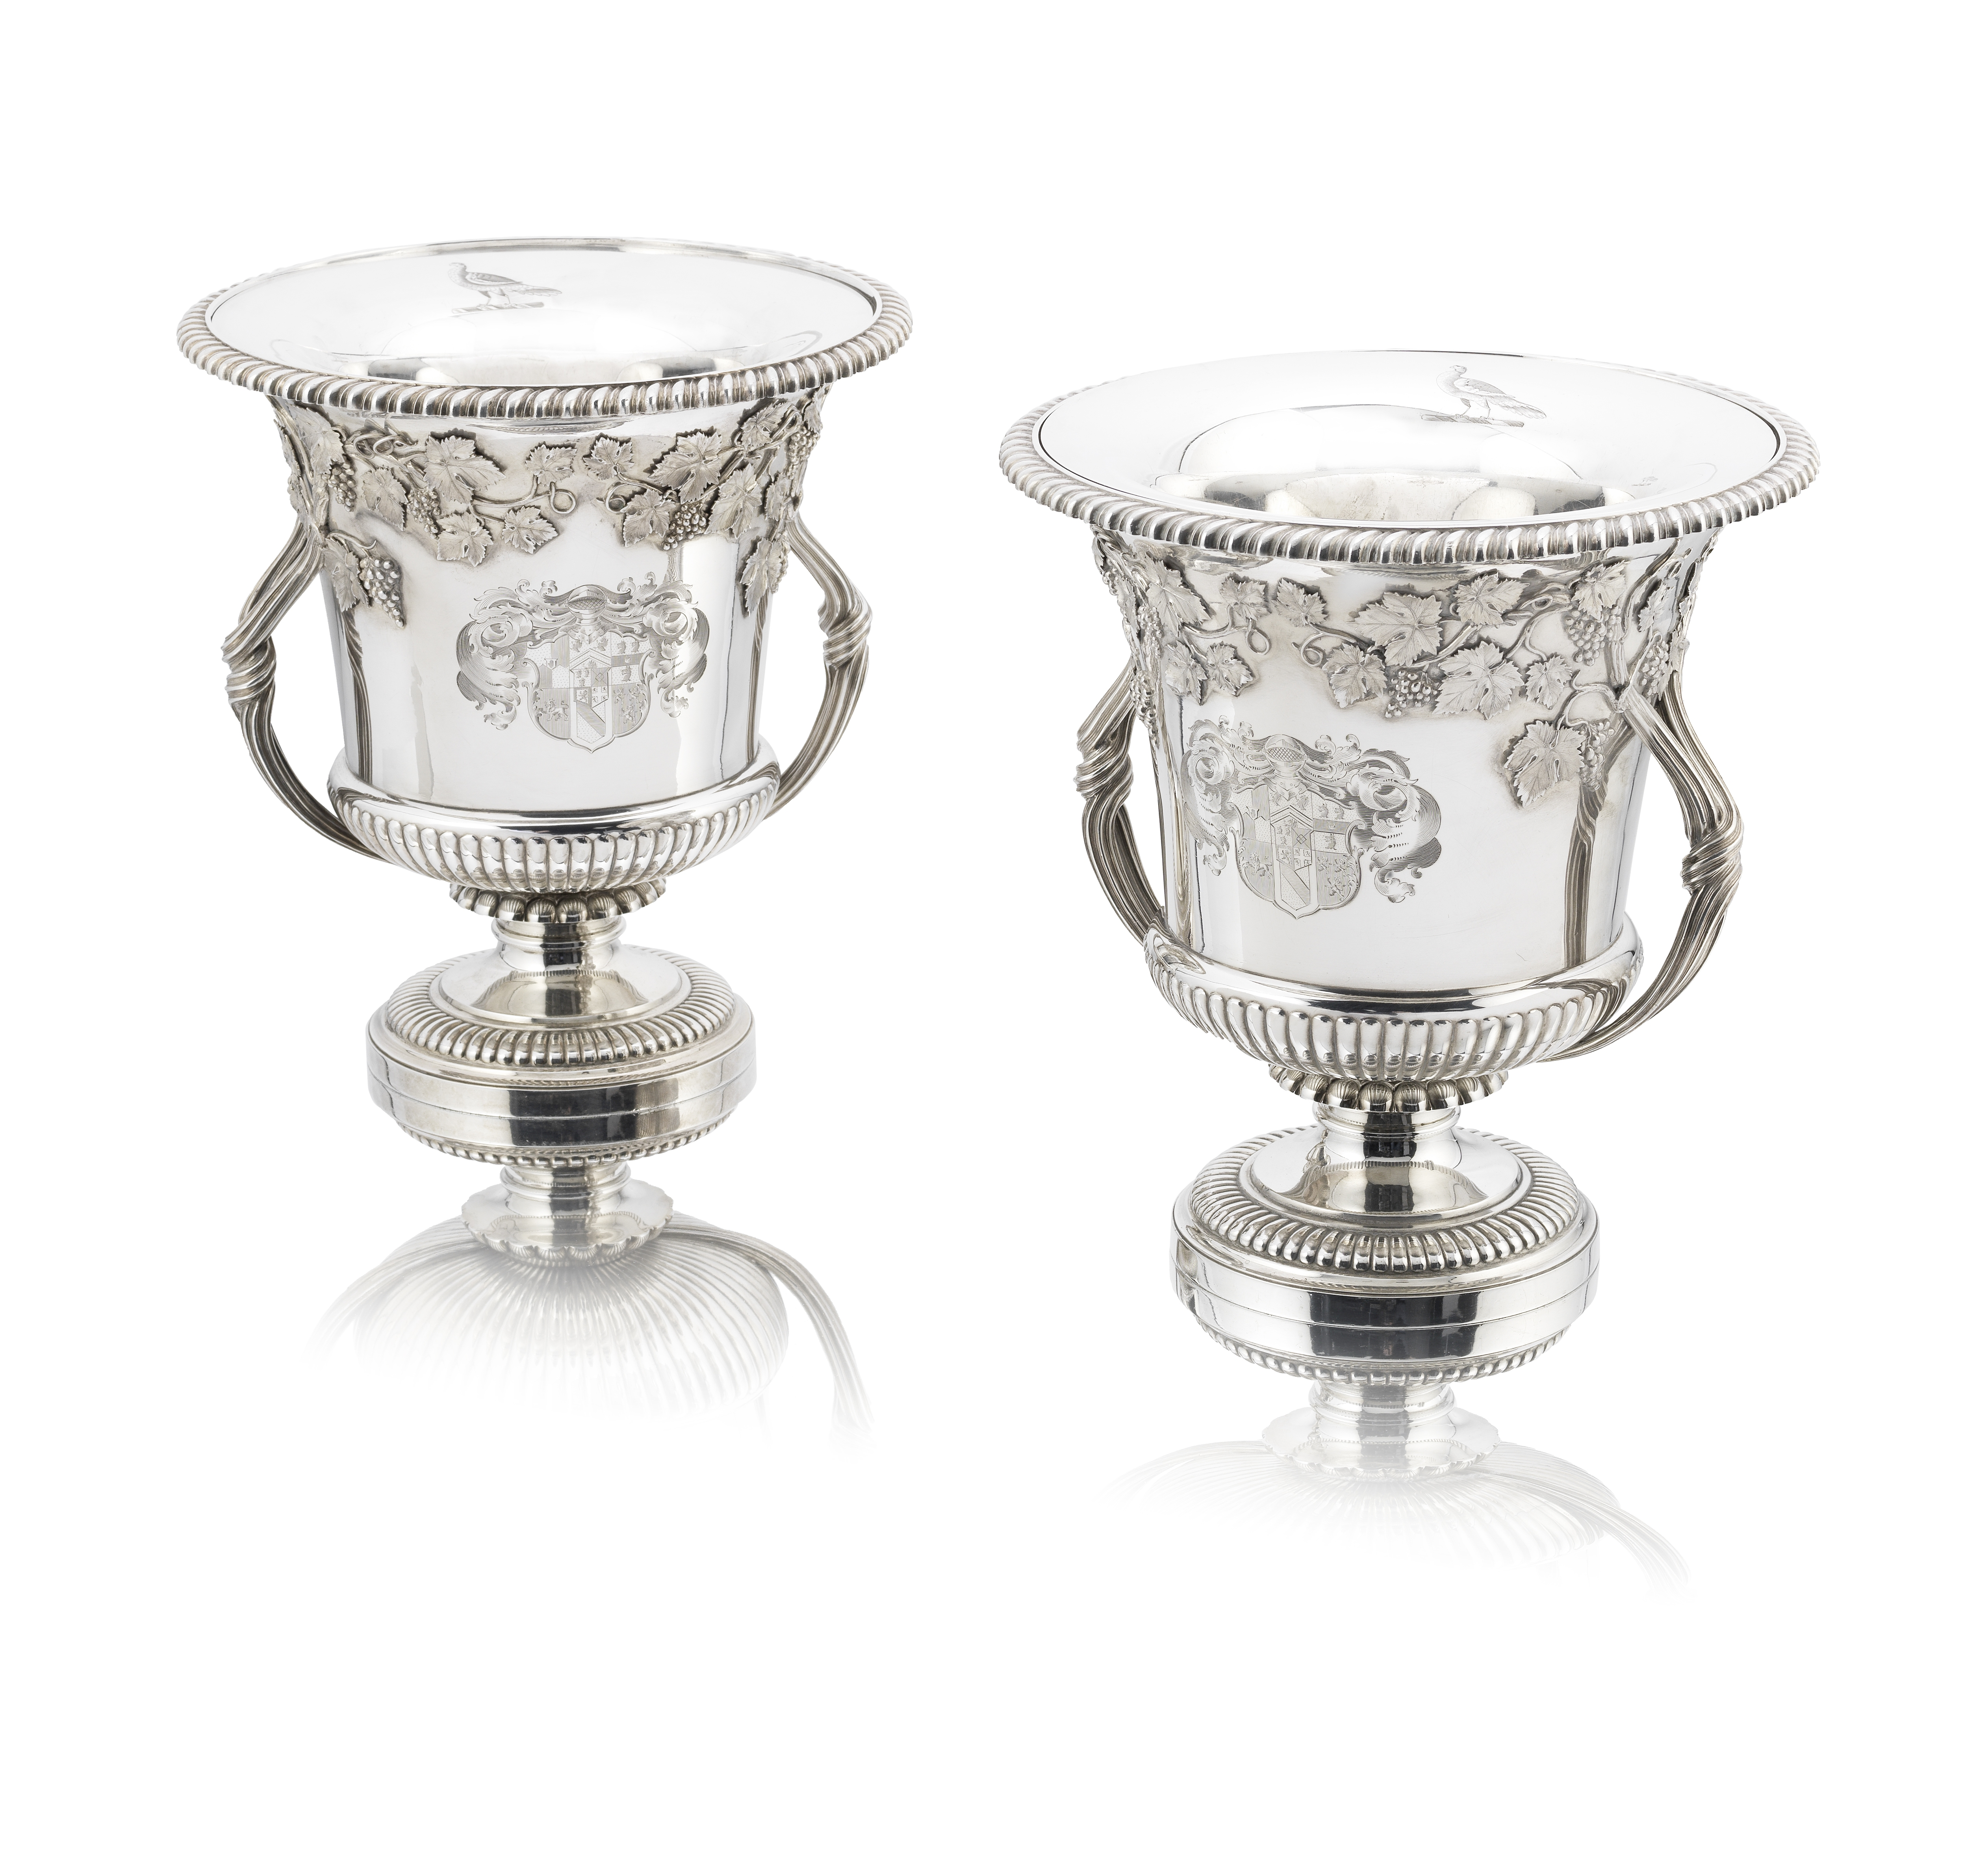 Lot 33 - A pair of George III / IV silver wine coolers Philip Rundell, London 1819 / 1822 (2)